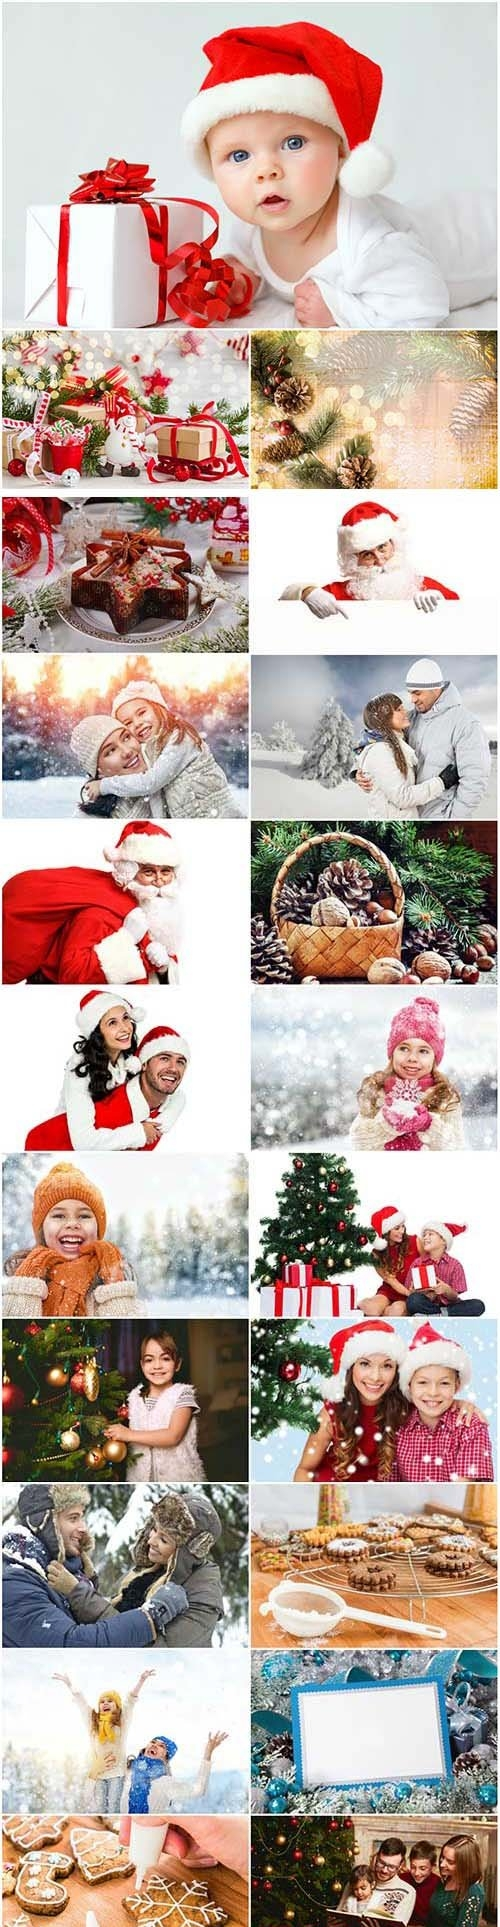 New Year and Christmas stock photos 90